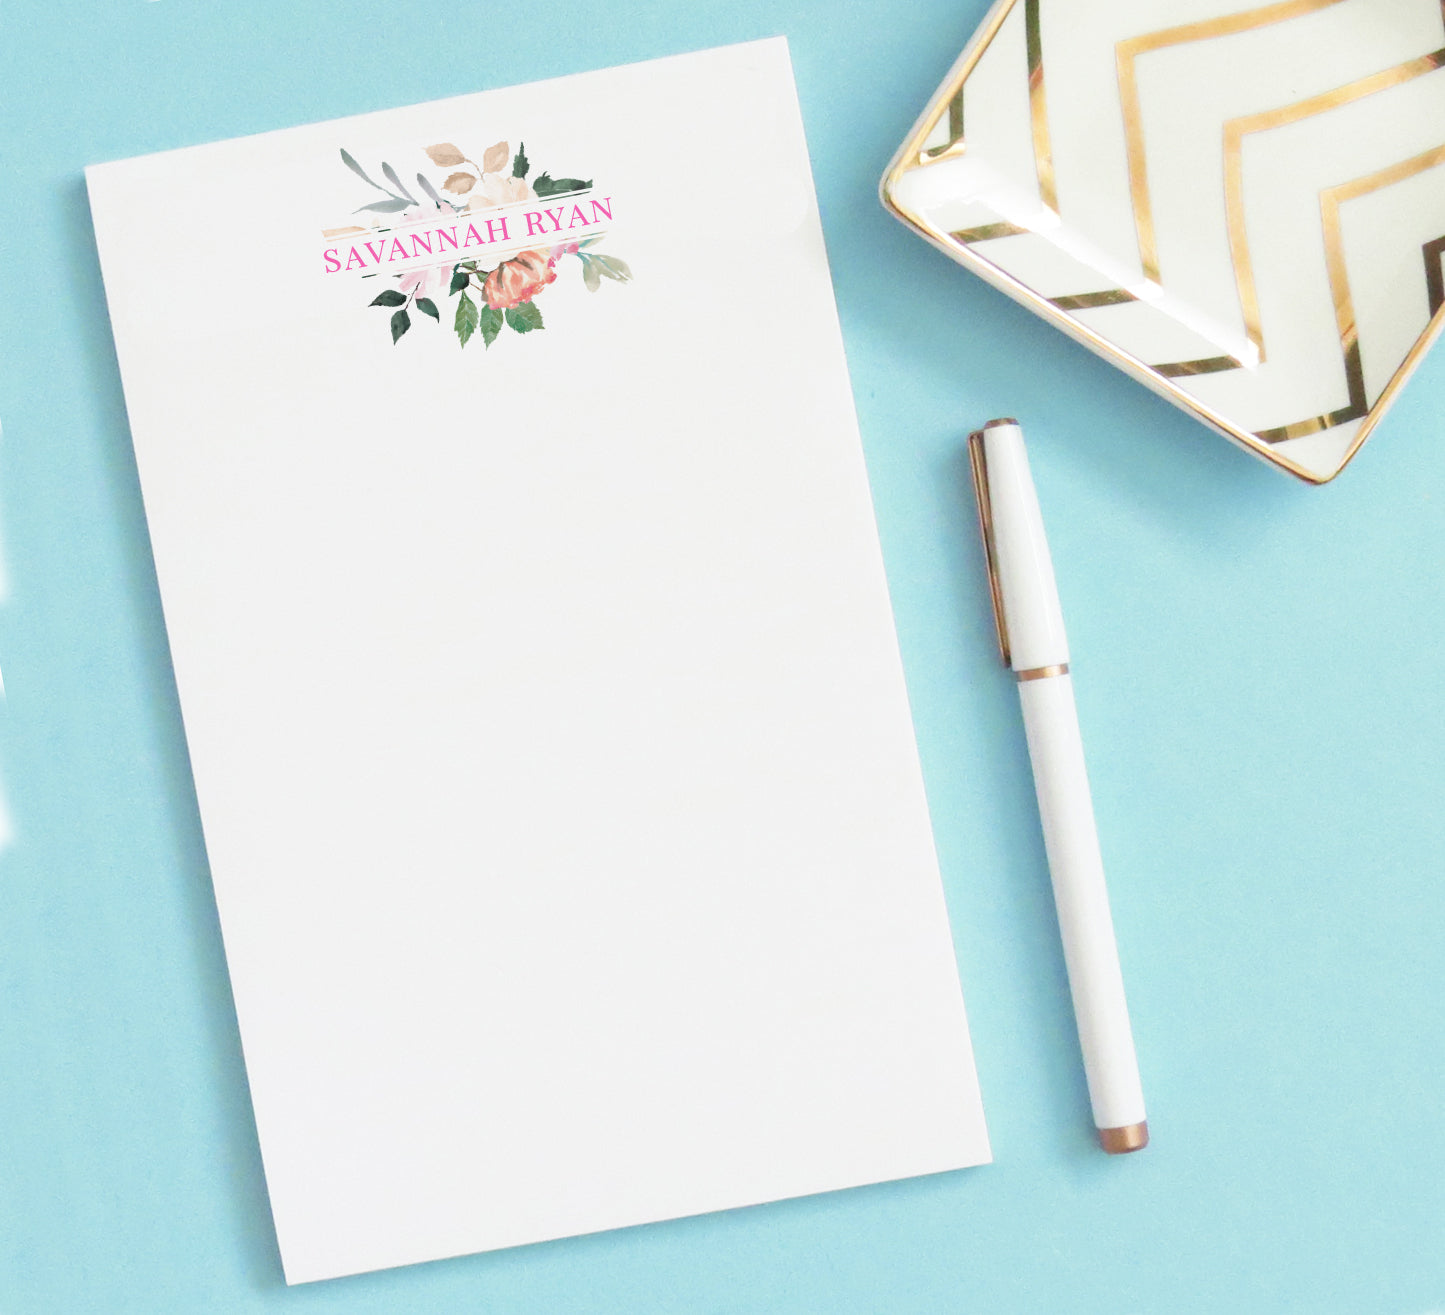 NP075 floral frame name personalized note pad set florals writing paper